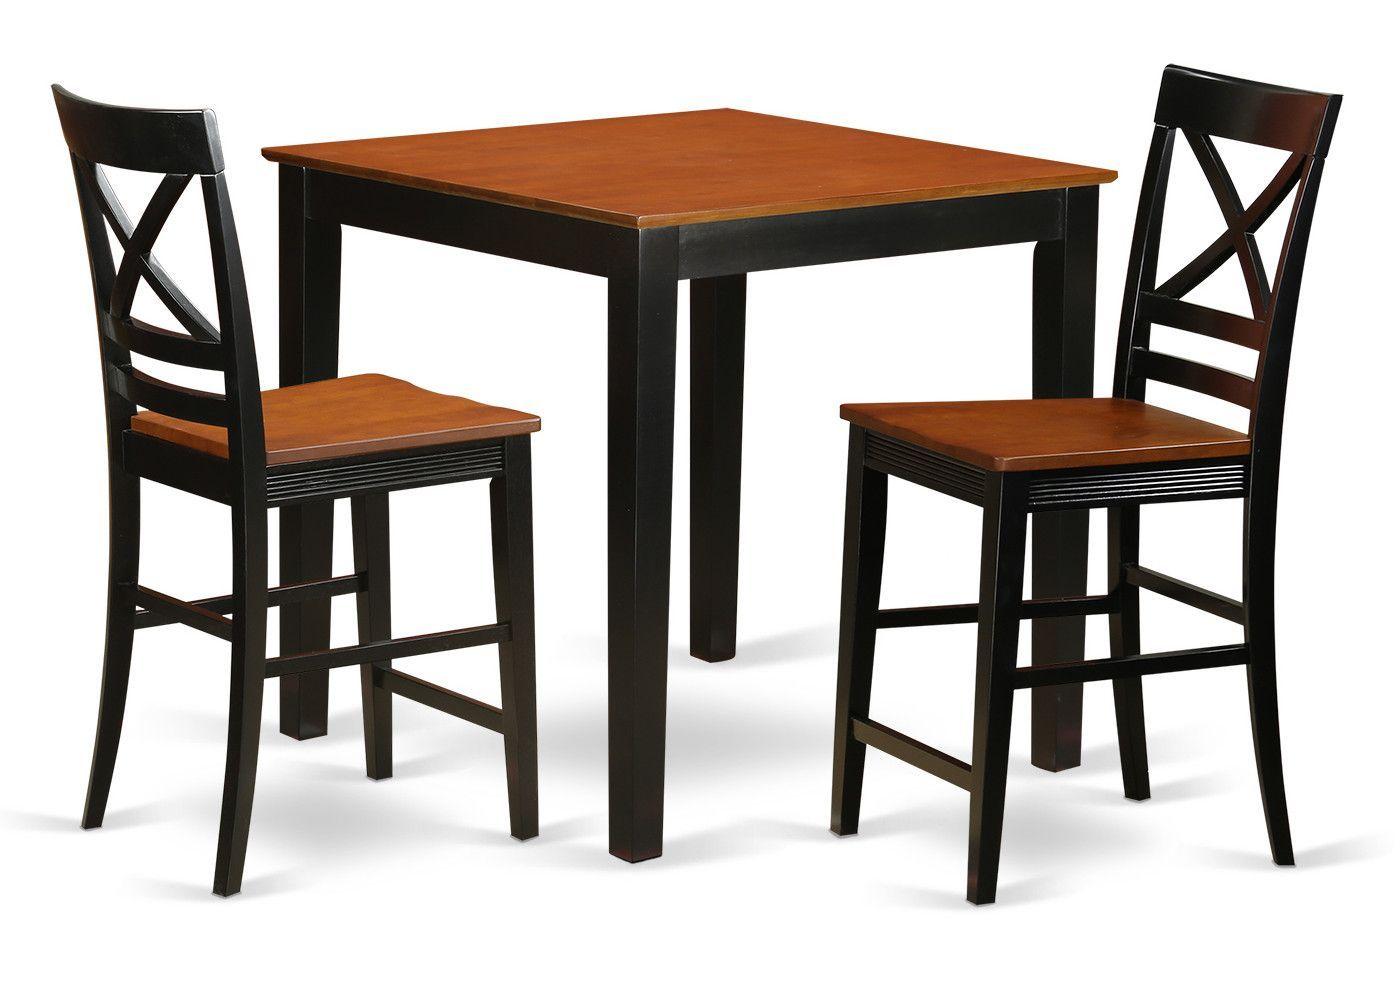 3 Piece Counter Height Pub Table Set Pub Table Sets Counter